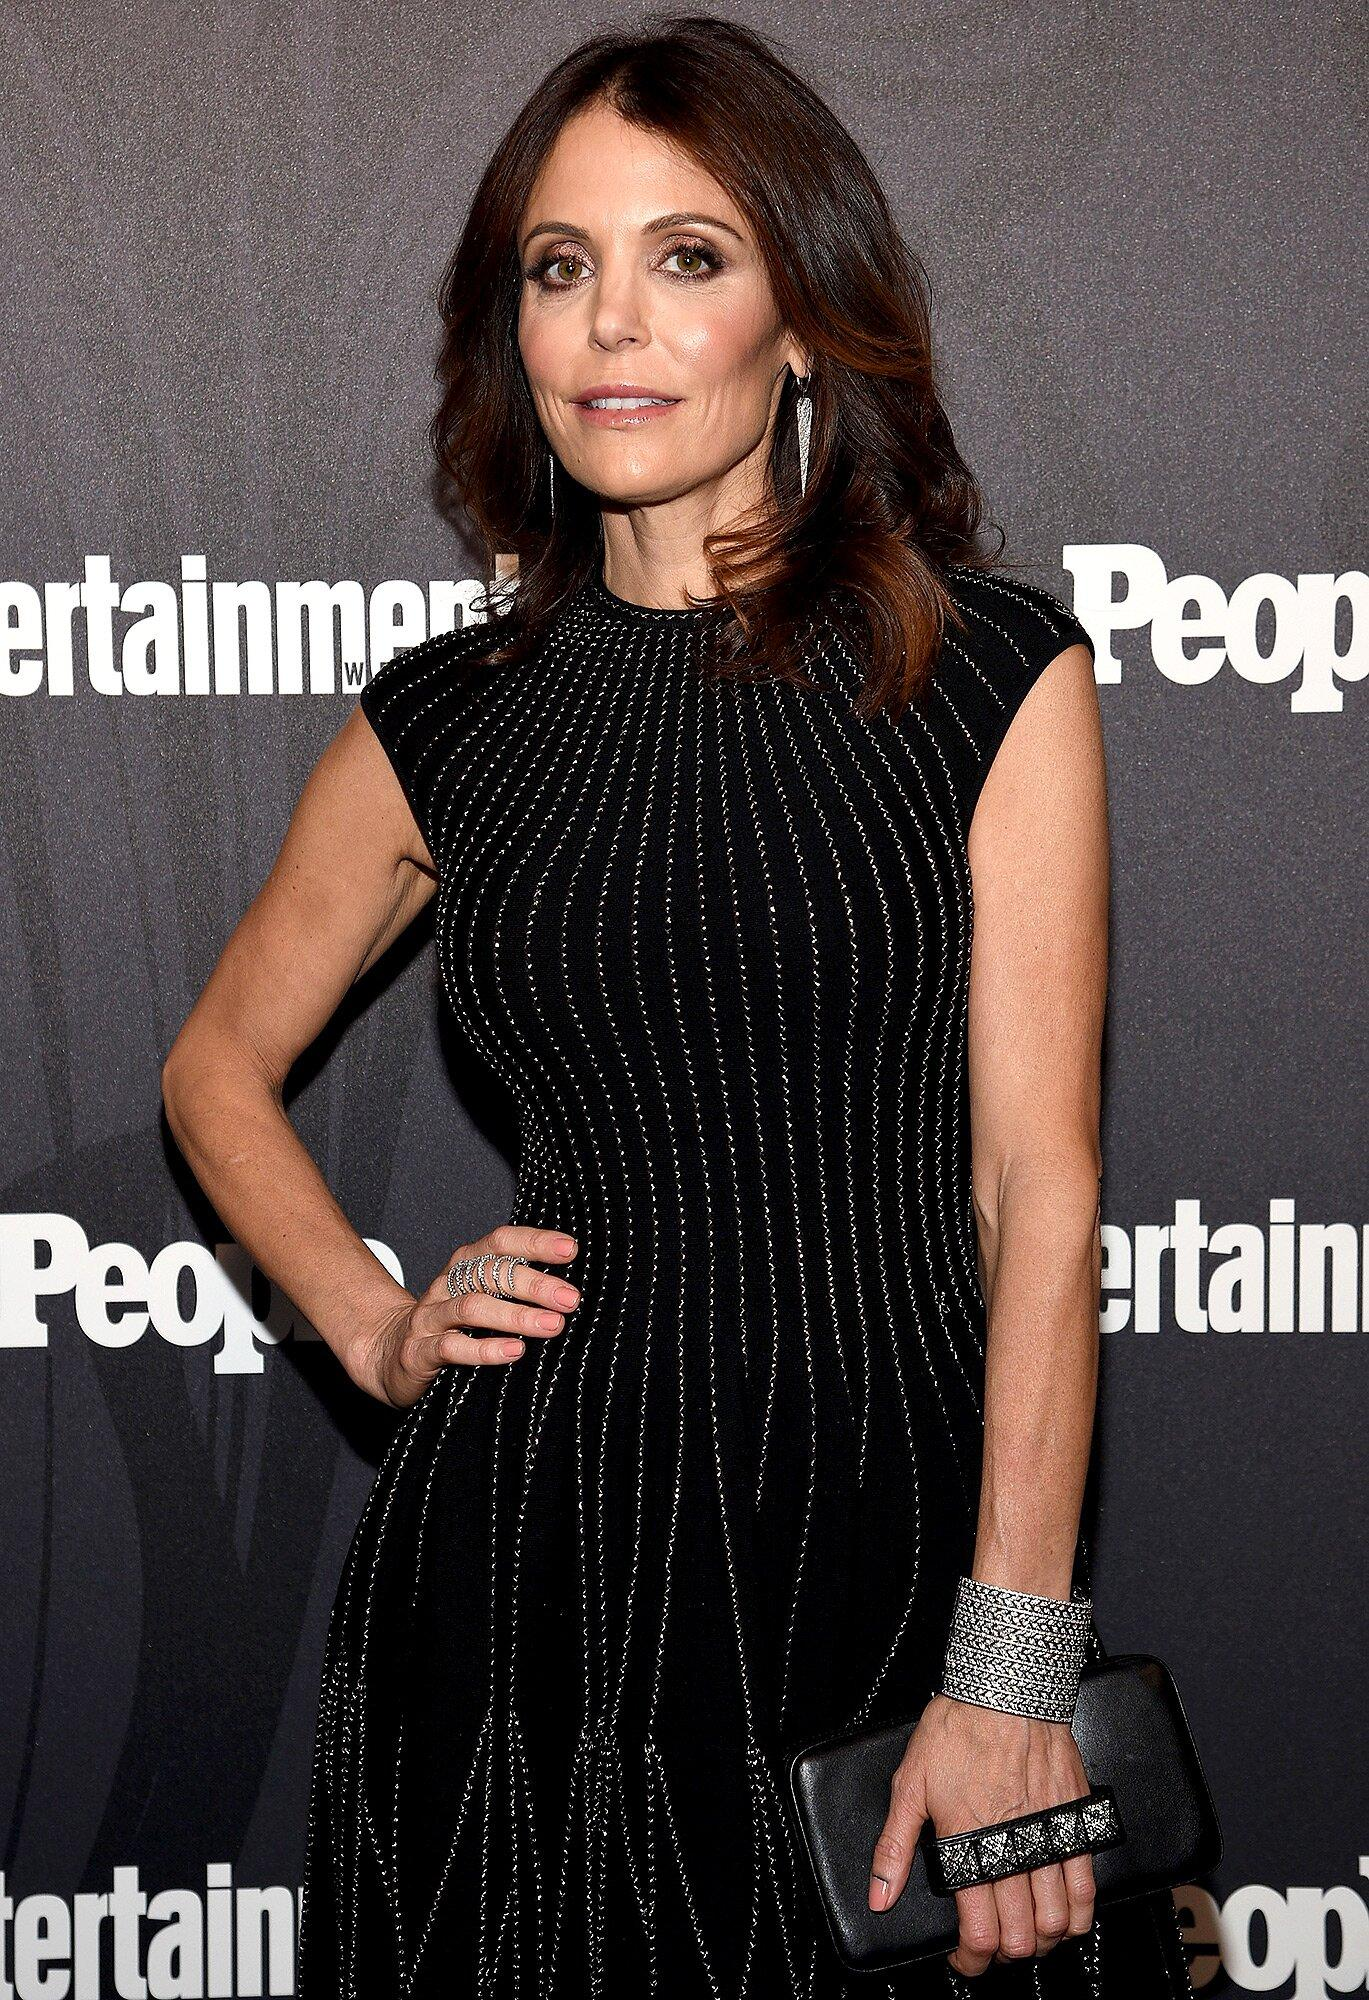 Bethenny Frankel Reveals She Tried A While Back To Adopt A 3 Year Old Child